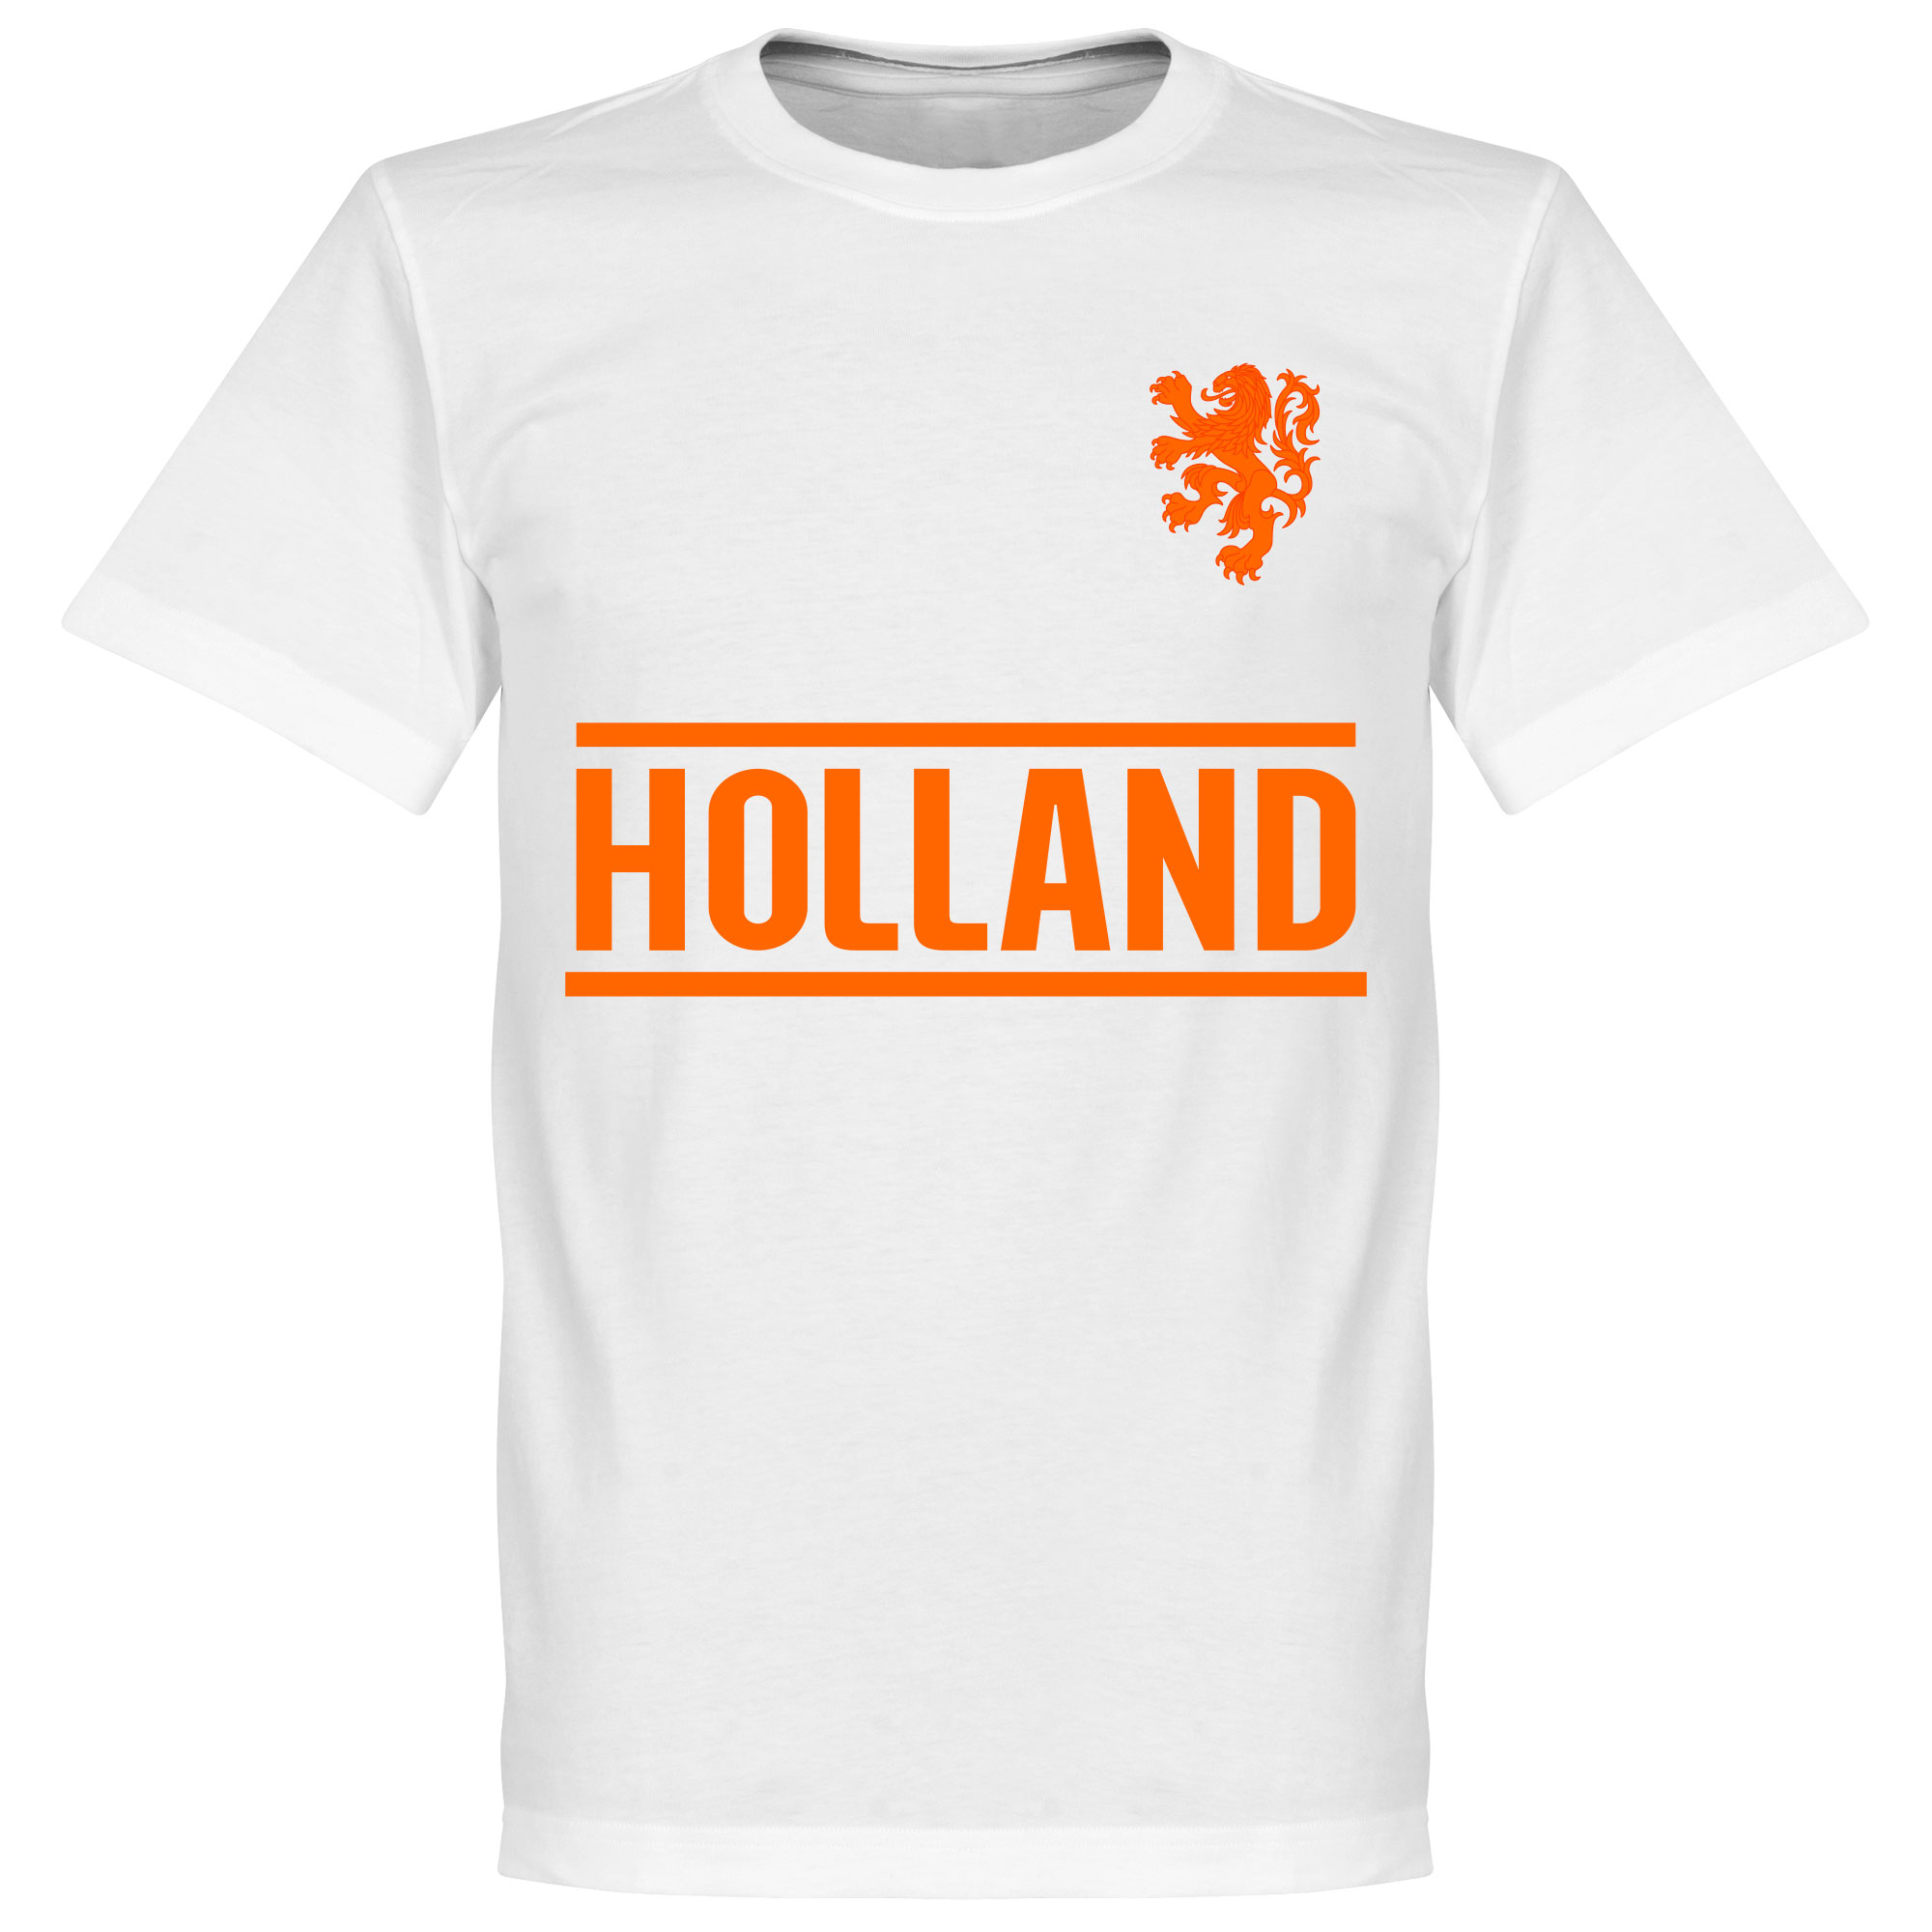 Holland Team Tee - White - XXXXXL